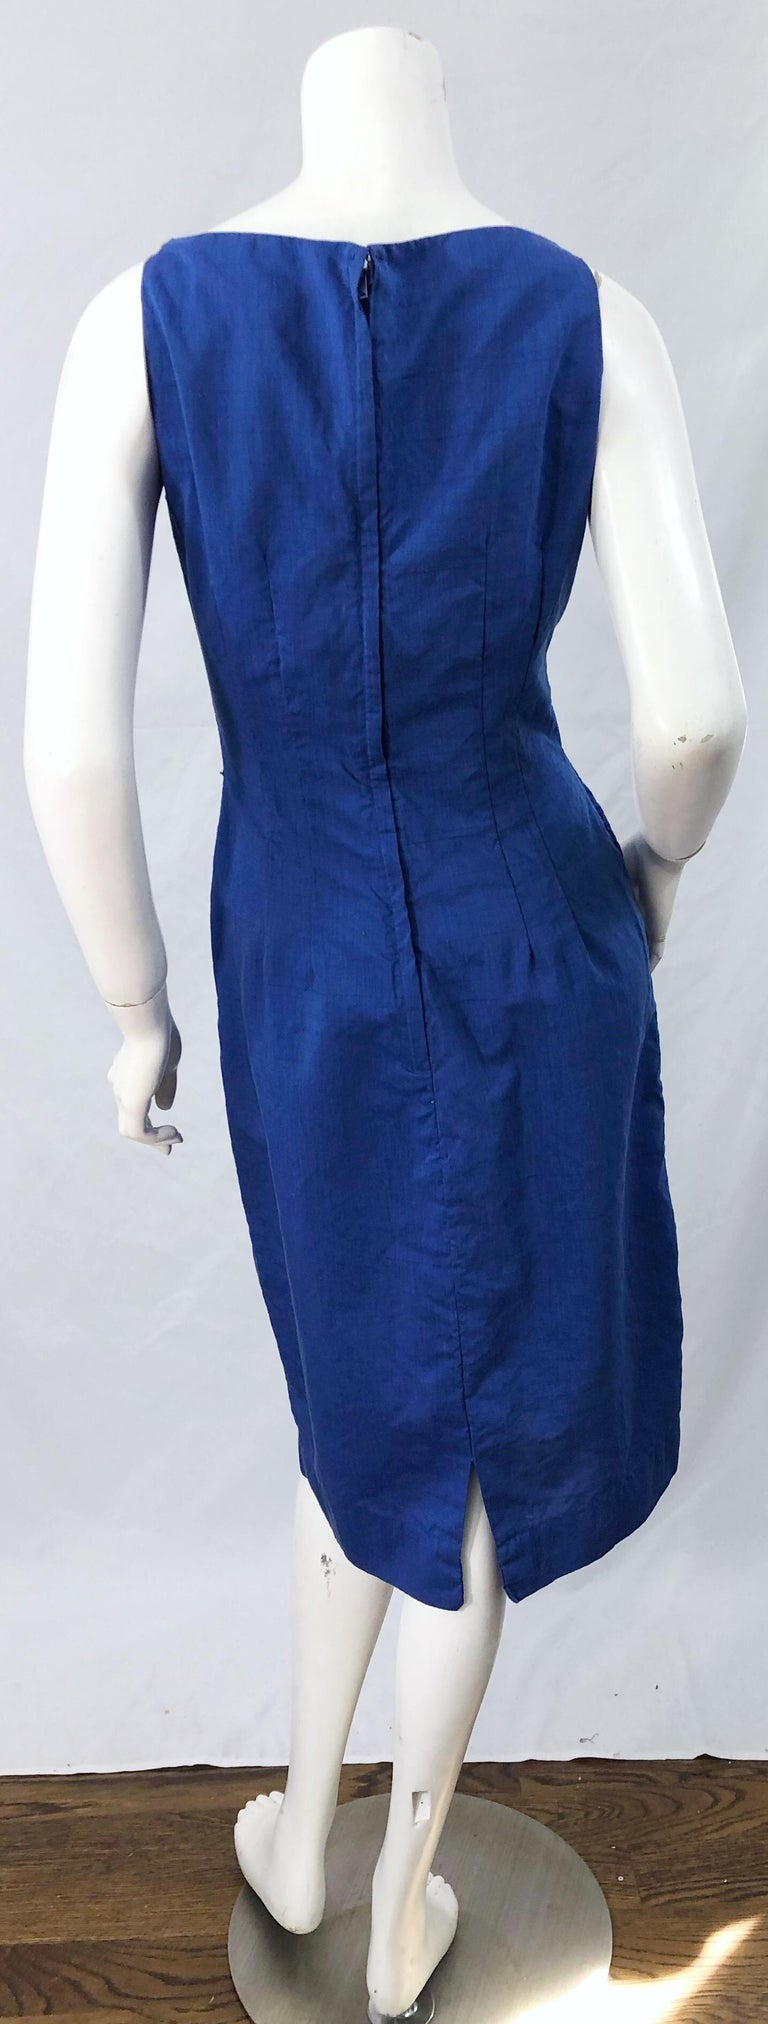 Chic 1950s Cobalt Blue Cotton High Neck Vintage 50s Sleeveless Wiggle Dress In Excellent Condition For Sale In Chicago, IL